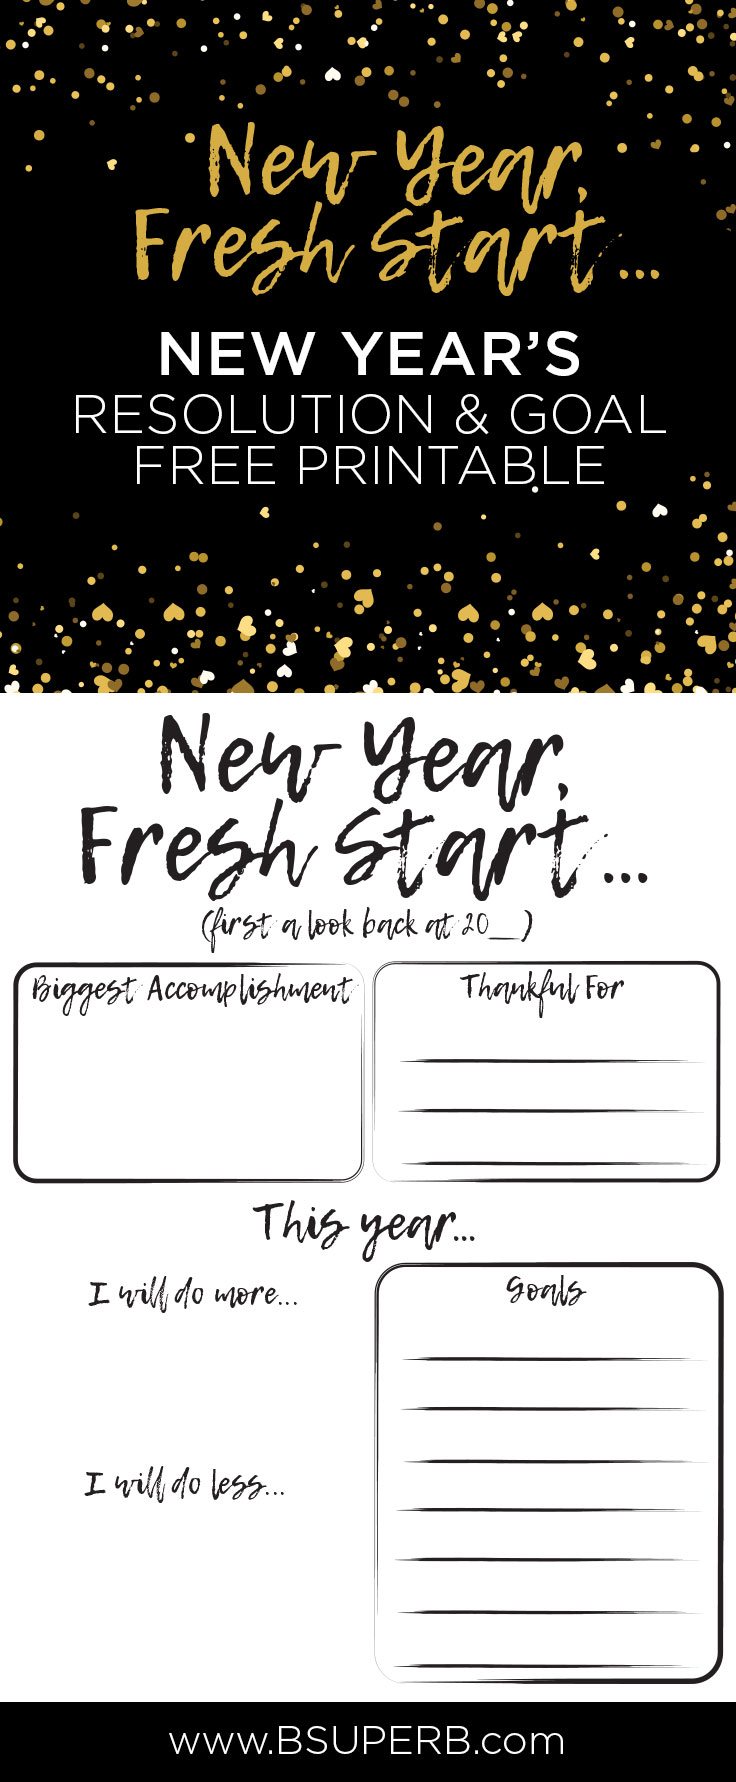 new years resolution goals free printable